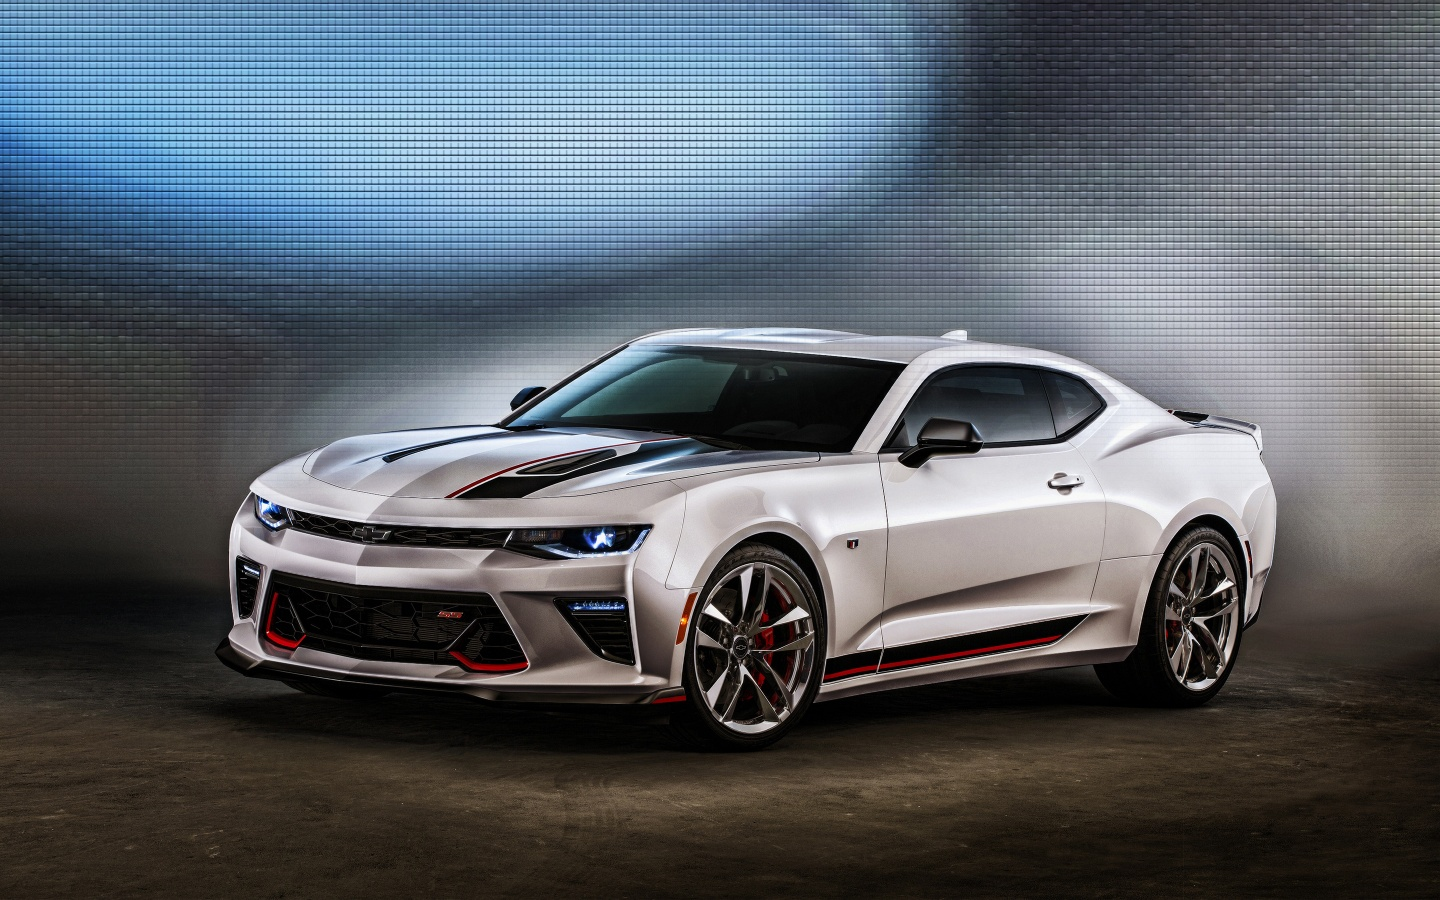 2016 Chevrolet Camaro SEMA Wallpaper HD Car Wallpapers 1440x900